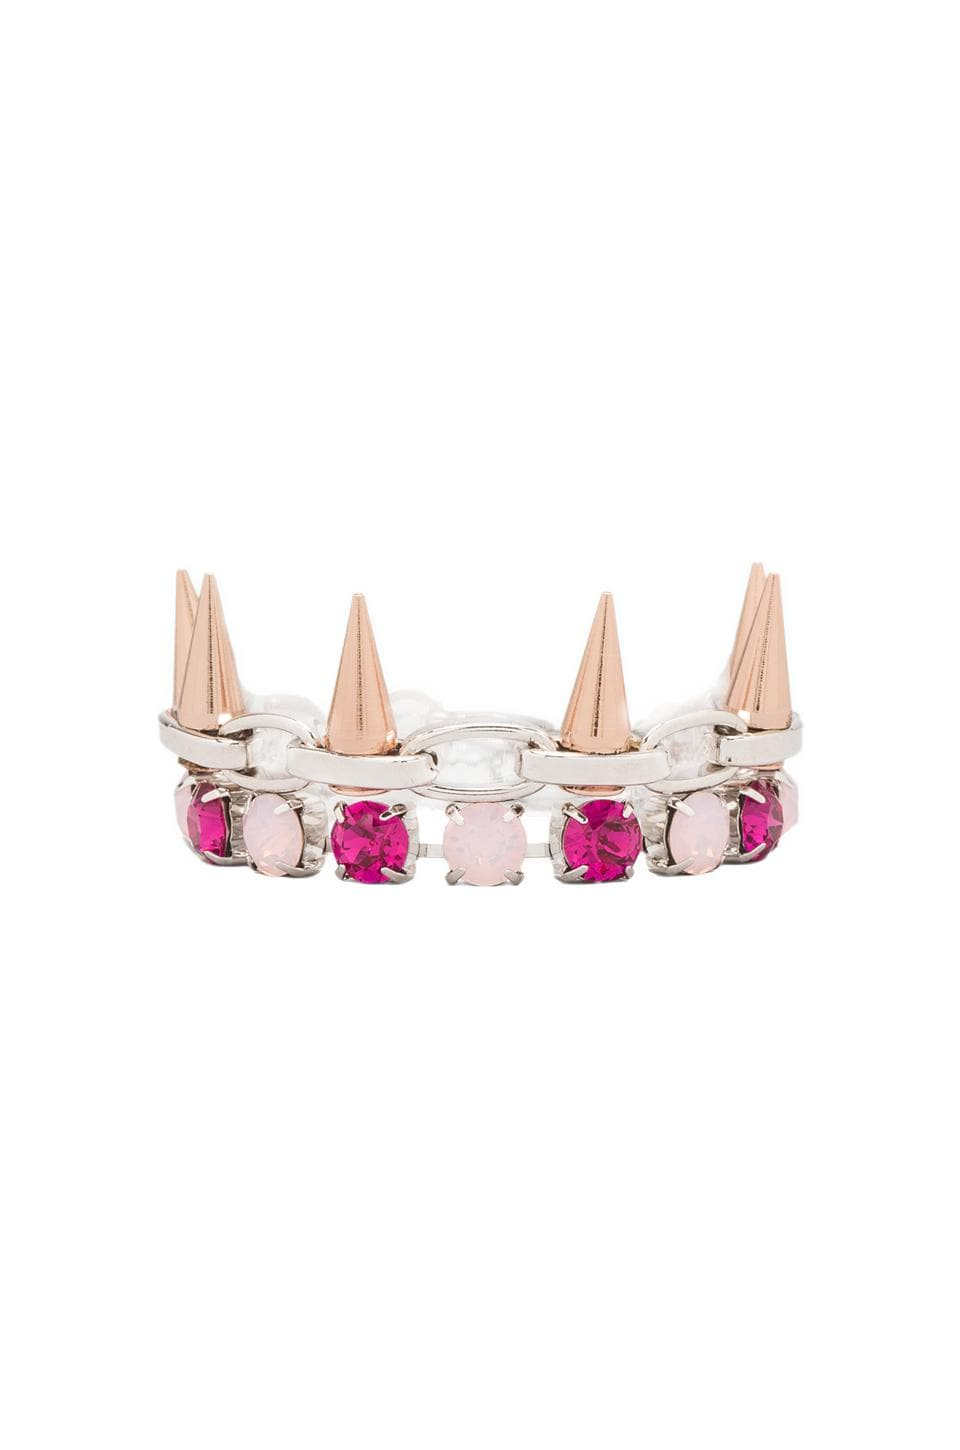 JOOMI LIM Crystal & Spike Bracelet in Pink/Rhodium/Rose Gold Spikes